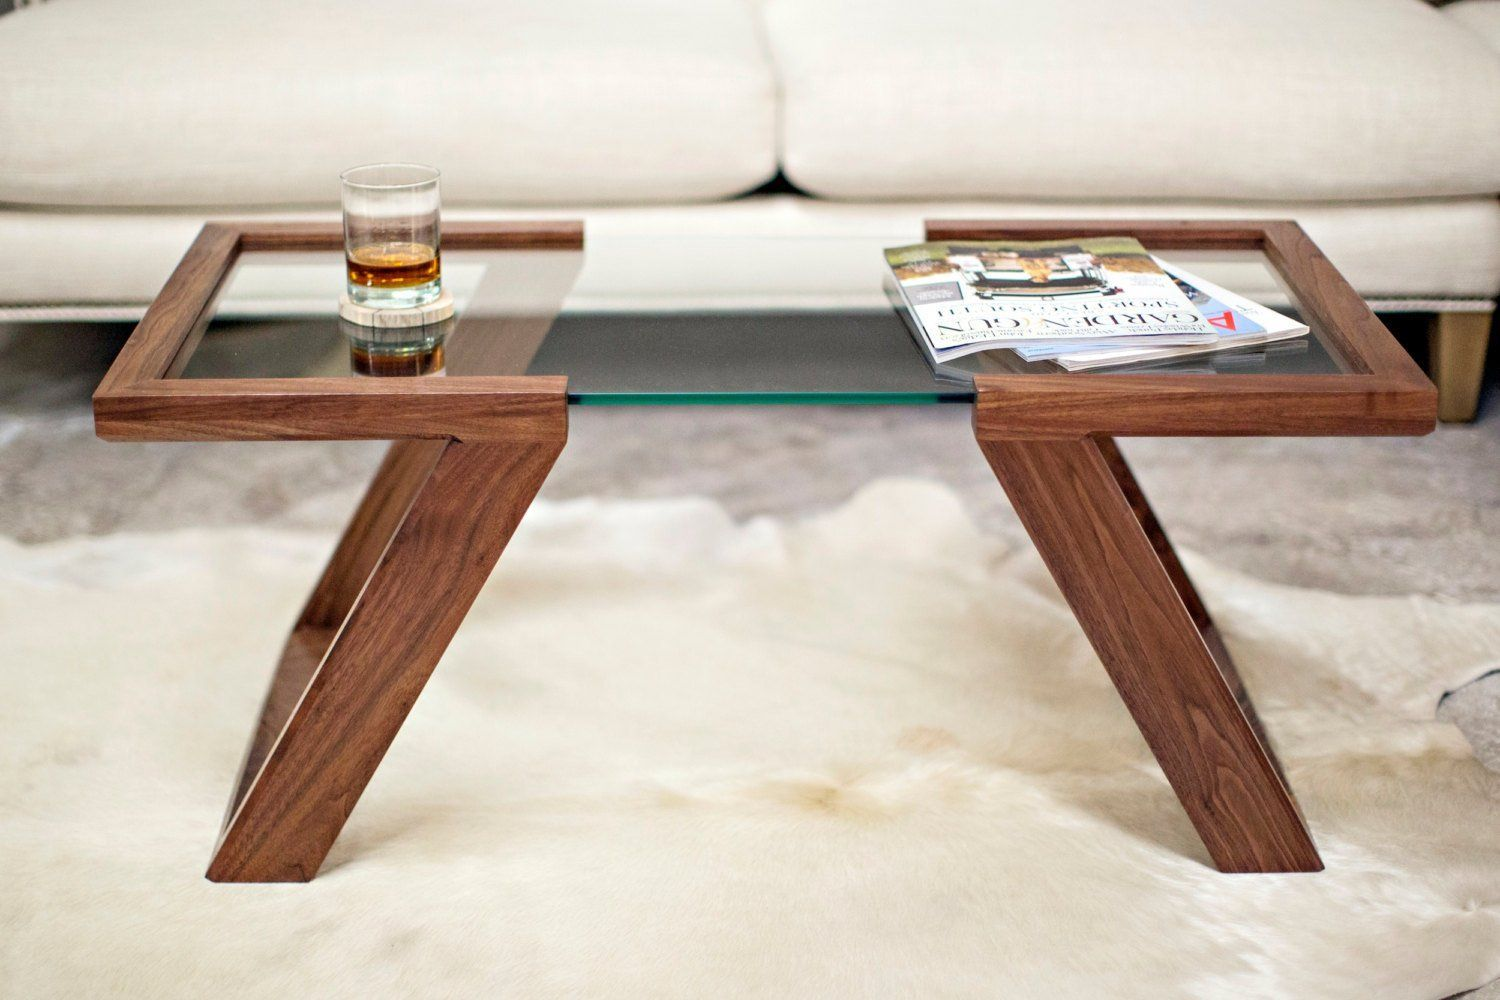 Veroniq Trends Floating Glass Centre Table In Solid Wood And 12 Mm Tempered Glass Top In Walnut Finish Coffee Table Furniture Coffee Table Furniture Decor [ 1000 x 1500 Pixel ]